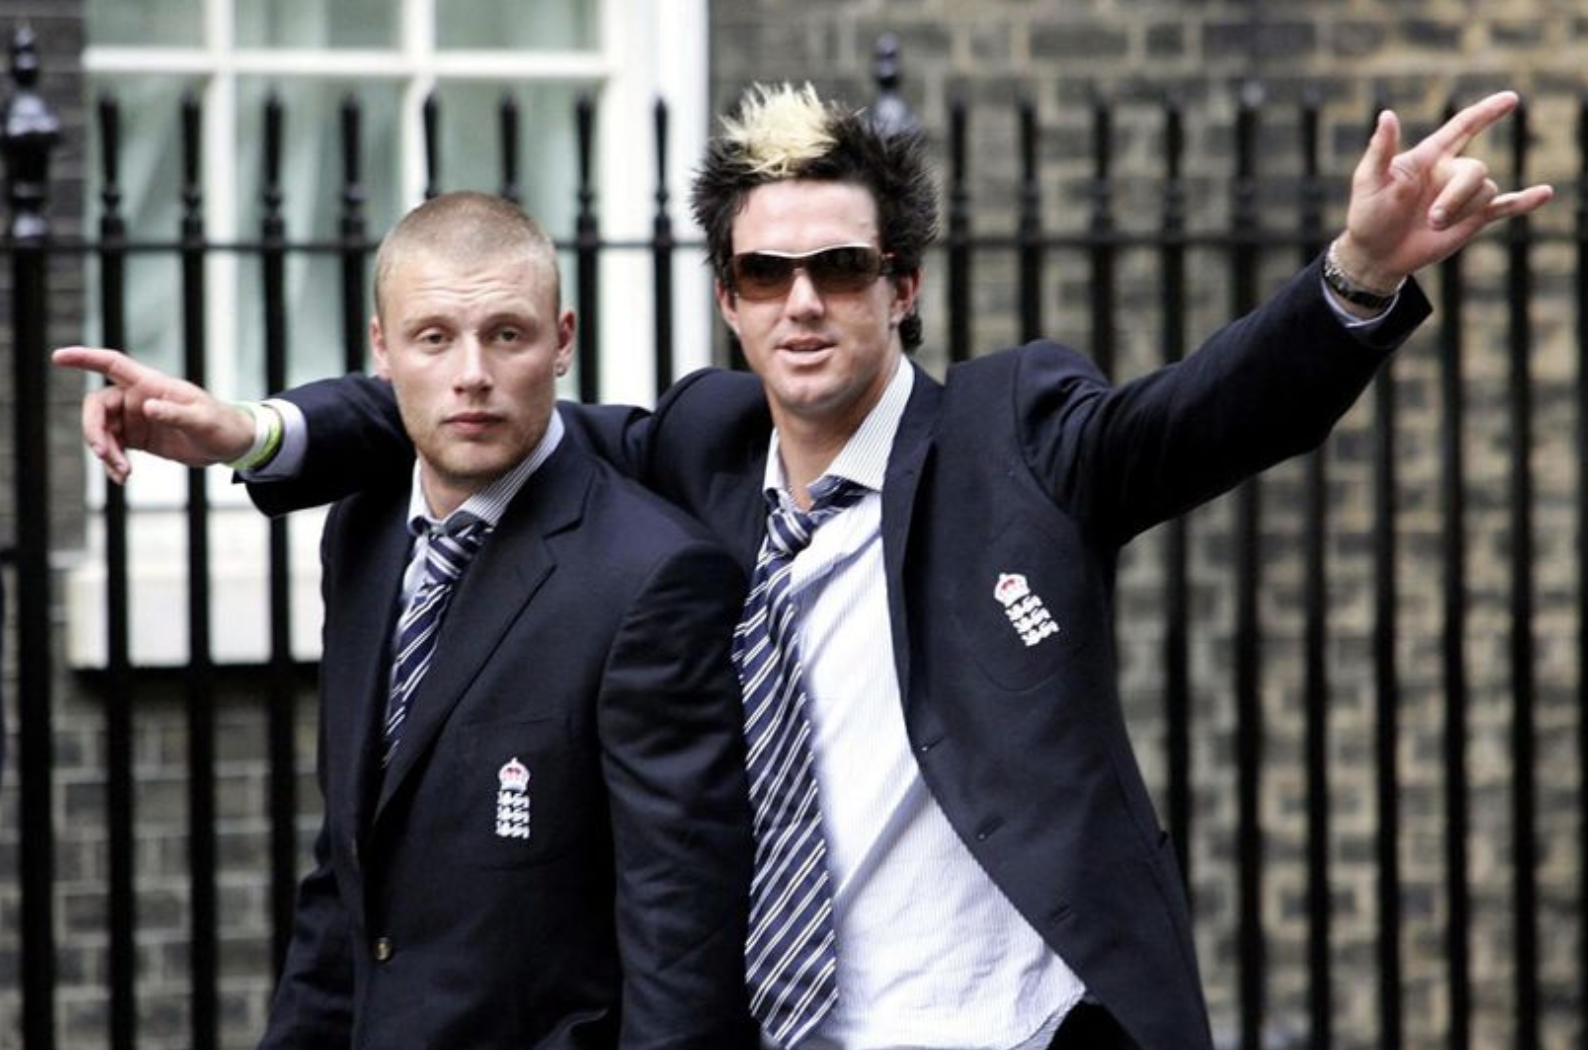 Freddie Flintoff With England's Kevin Pietersen at No10 Downing Street